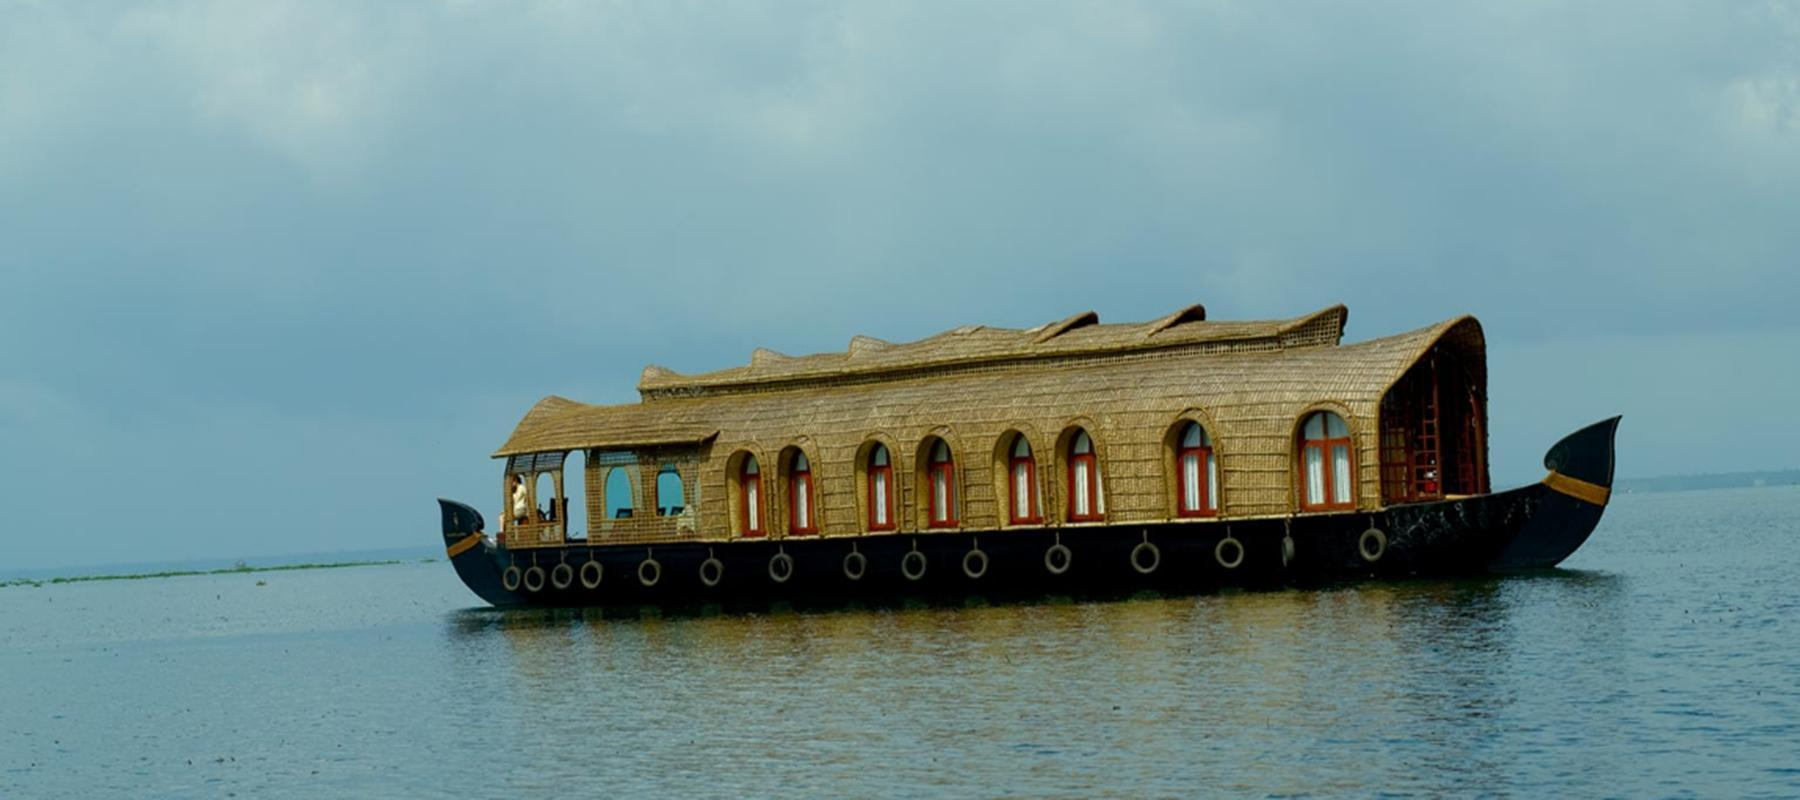 House Boats in Kerala